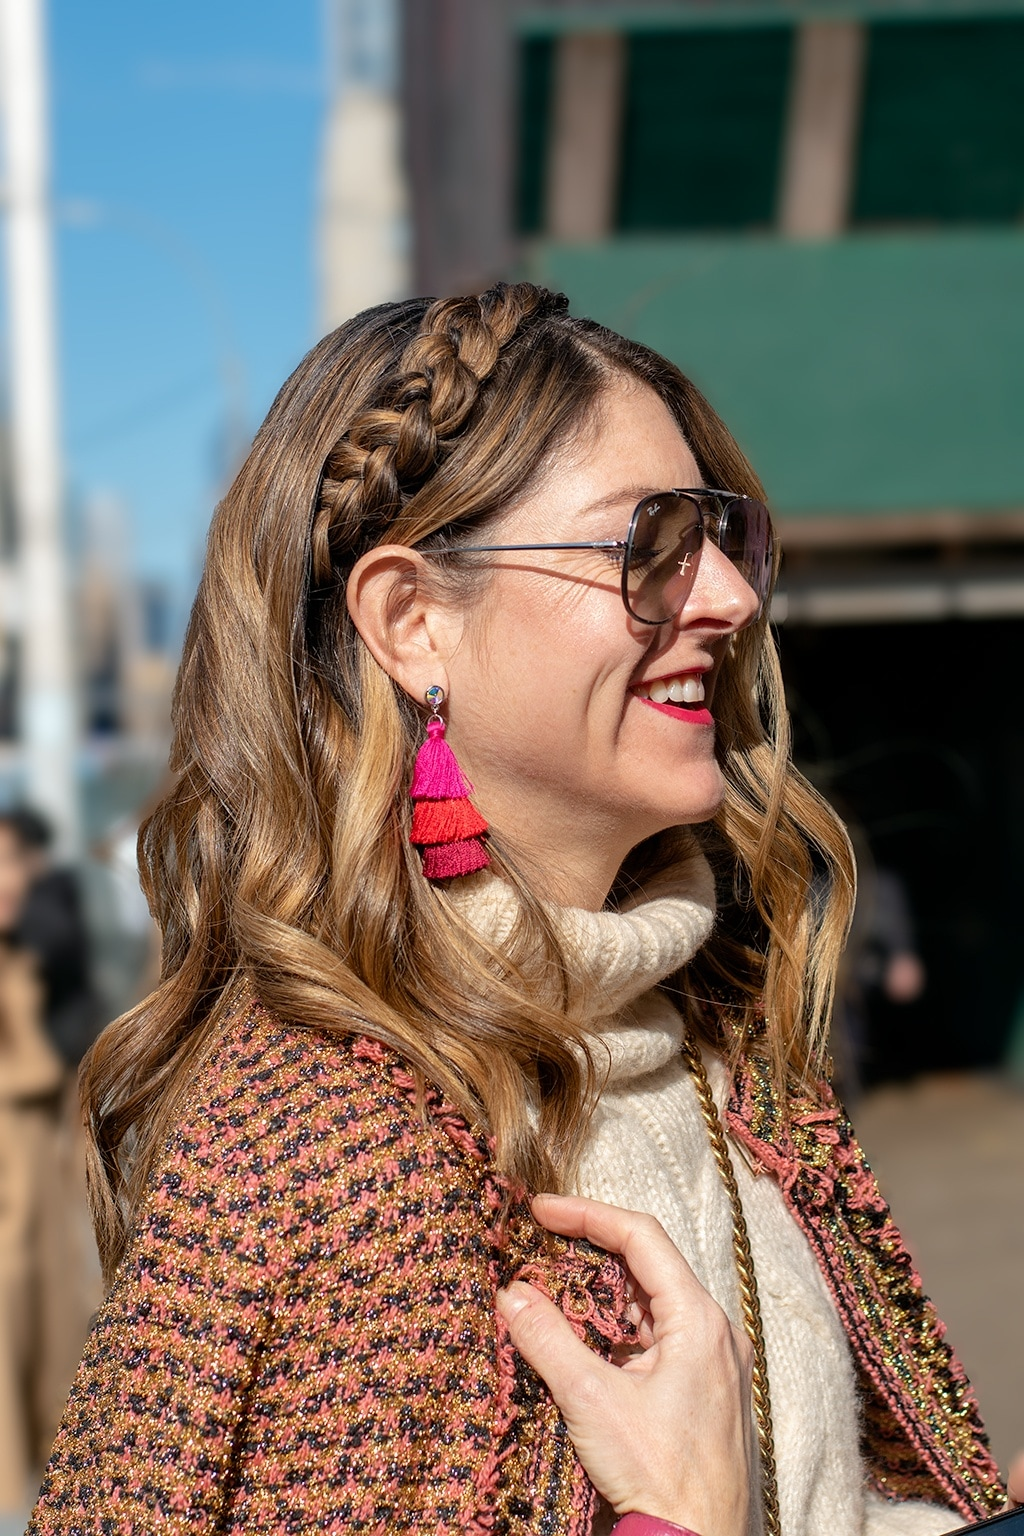 NYFW AW19 Street Style: Shot of woman with dirty blonde ombre hair with headband braid, tassel earrings with turtleneck jumper and boucle print coat